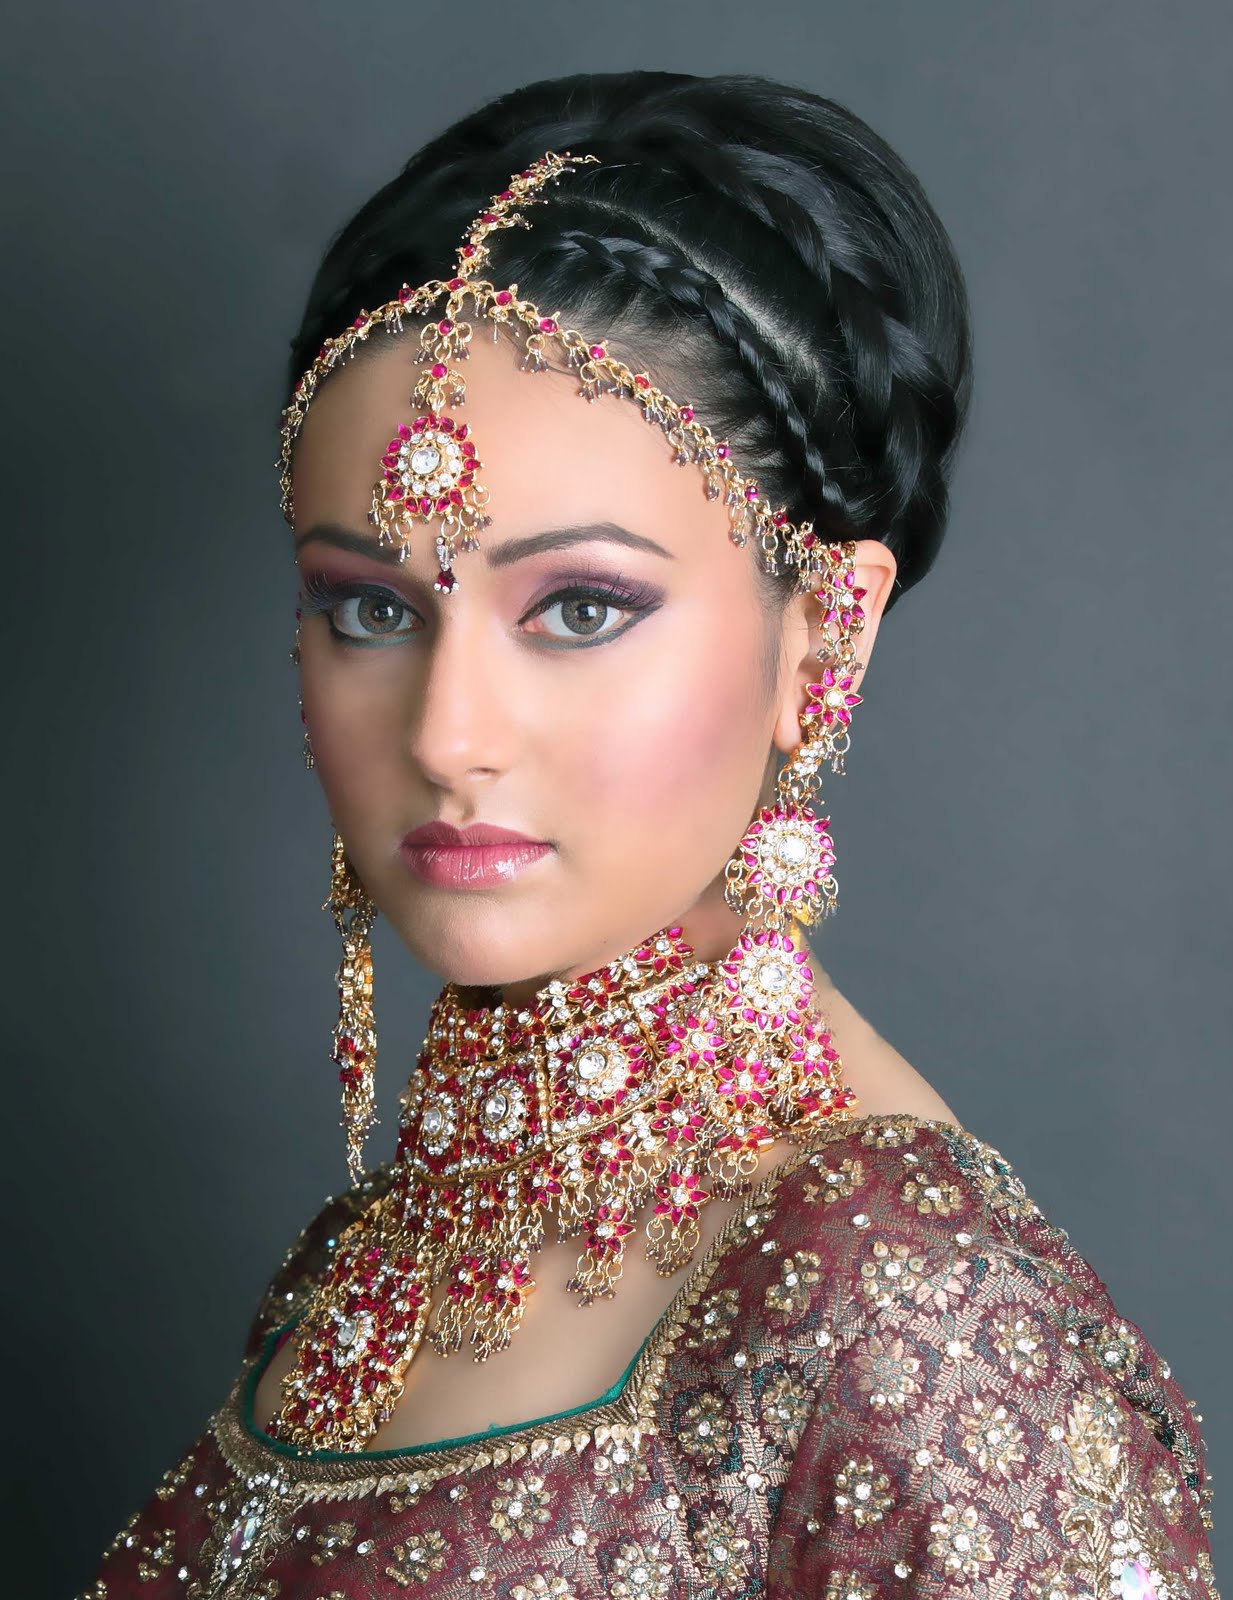 Cute Indian Wedding Hair Style For Women With Images Of Wedding